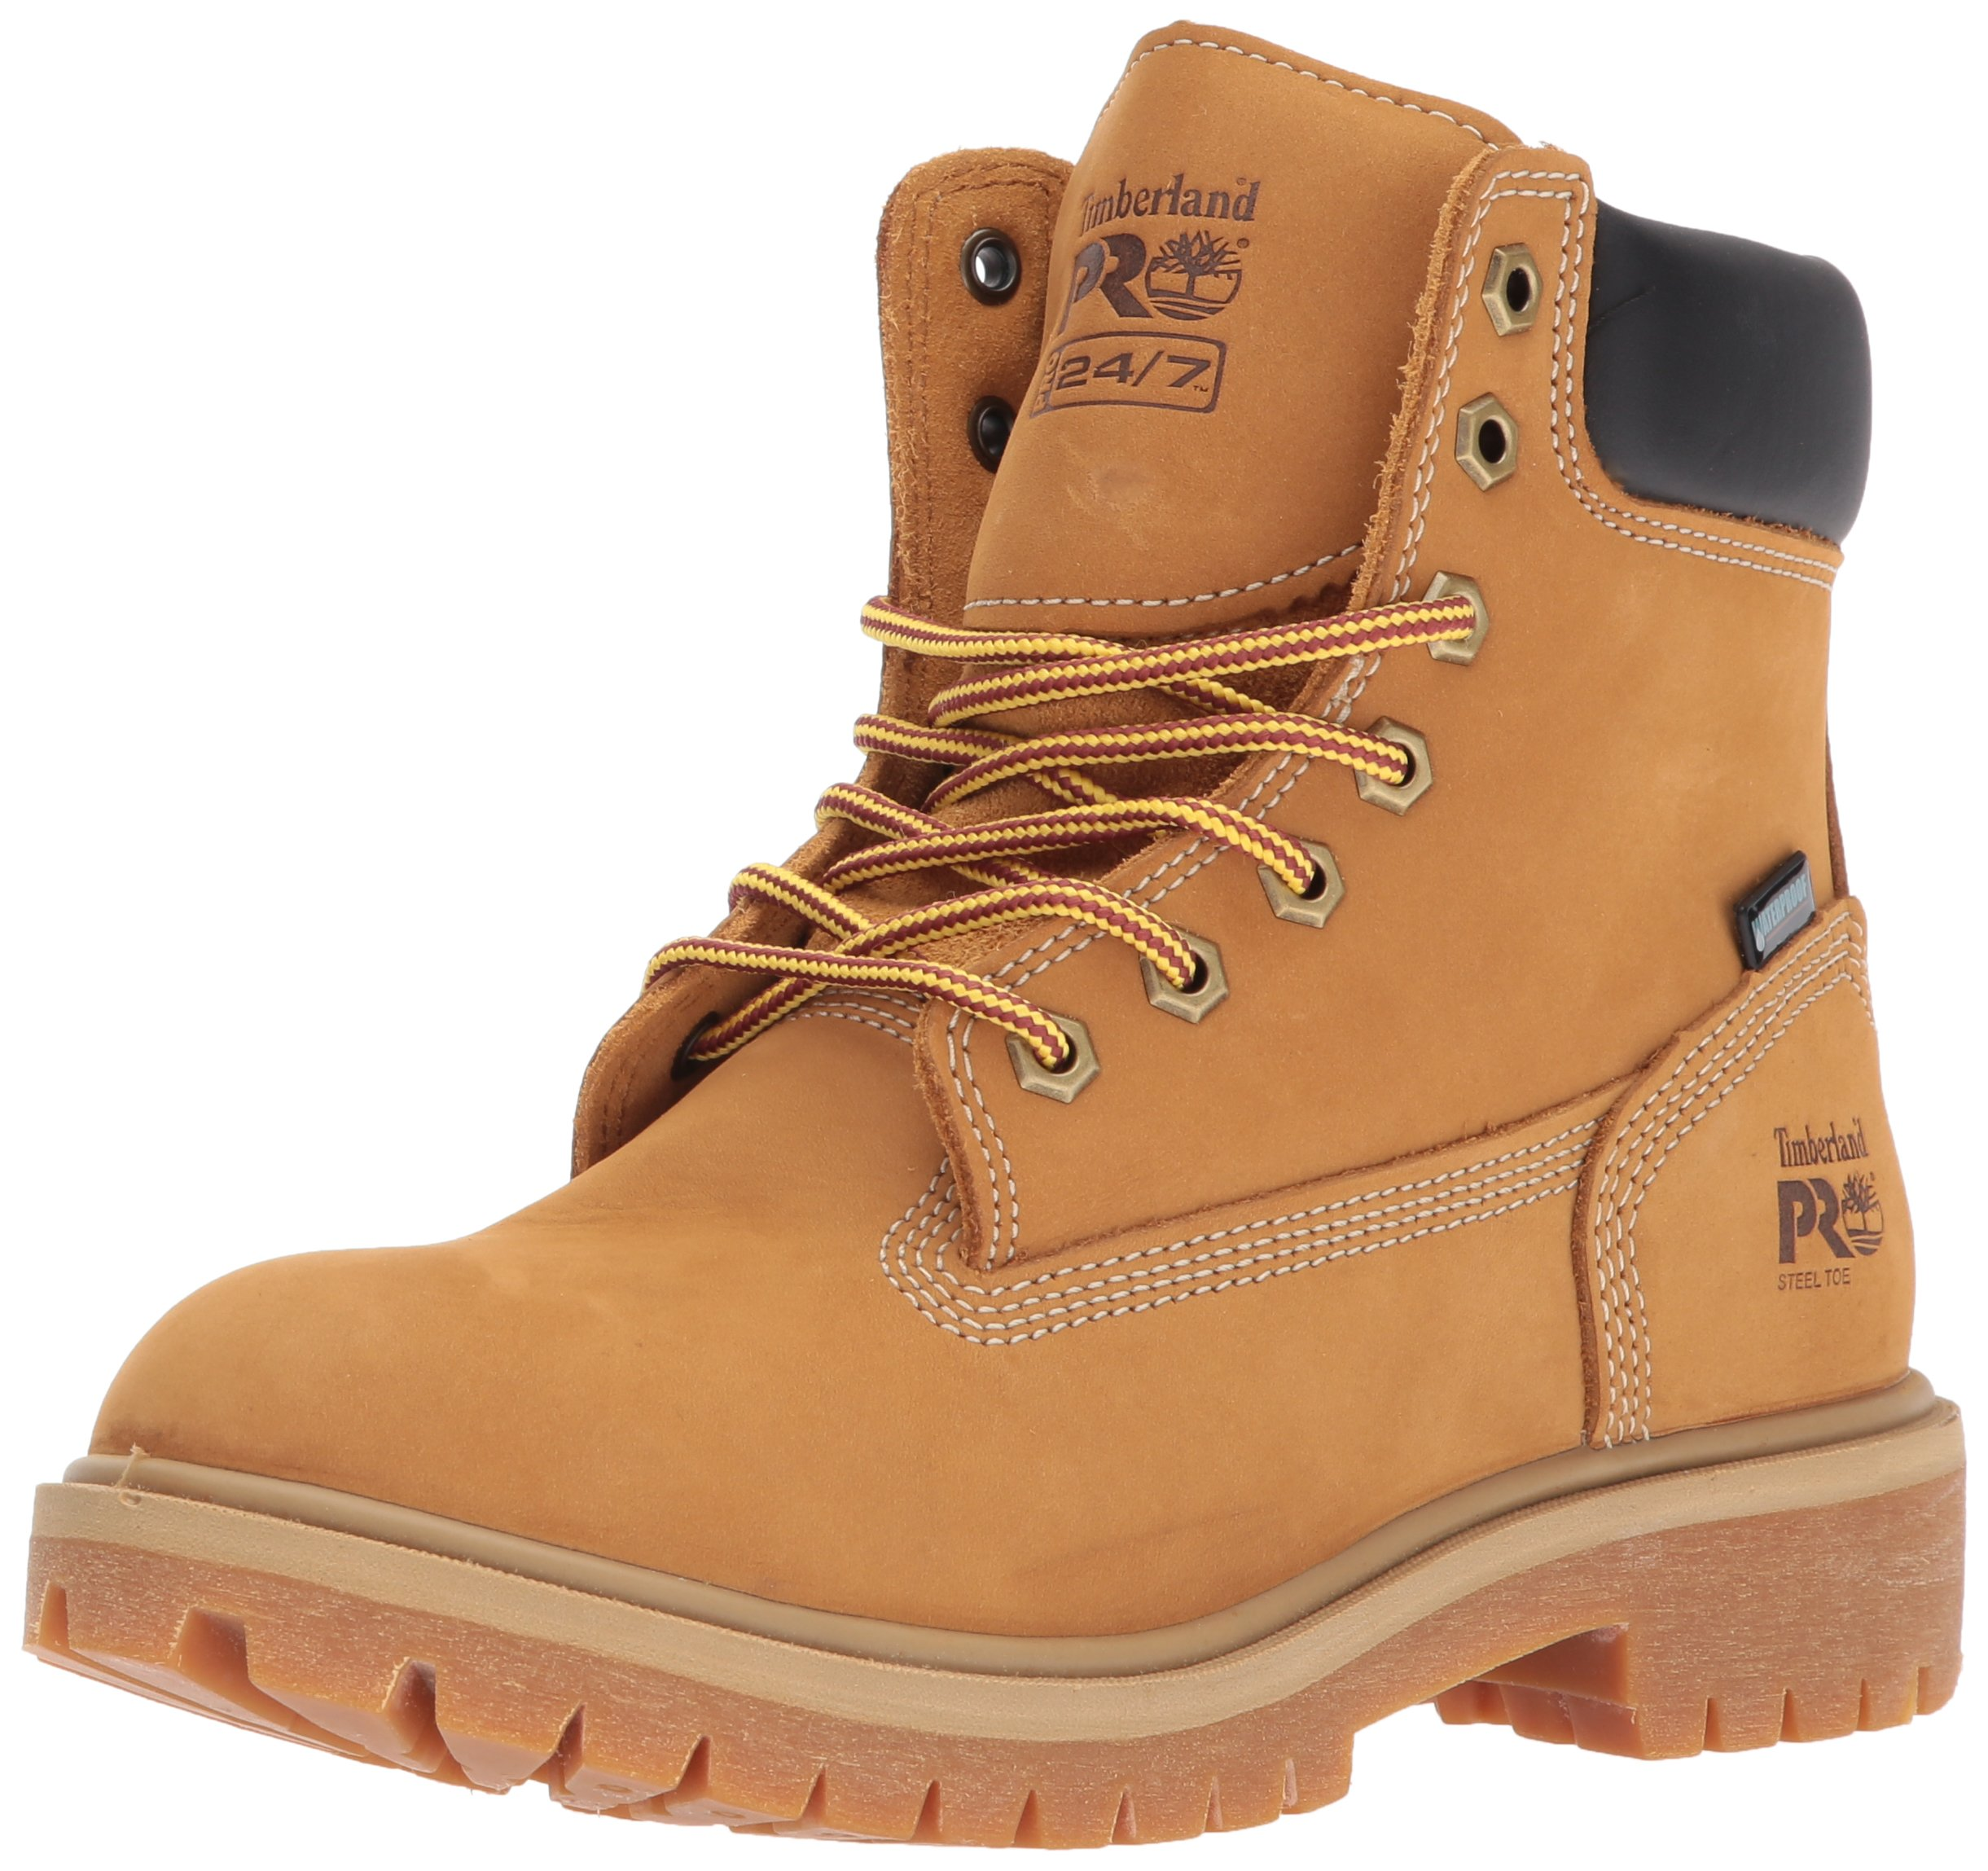 Timberland PRO Women's Direct Attach 6'' Steel Toe Waterproof Insulated Industrial & Construction Shoe, Wheat Nubuck Leather, 8 M US by Timberland PRO